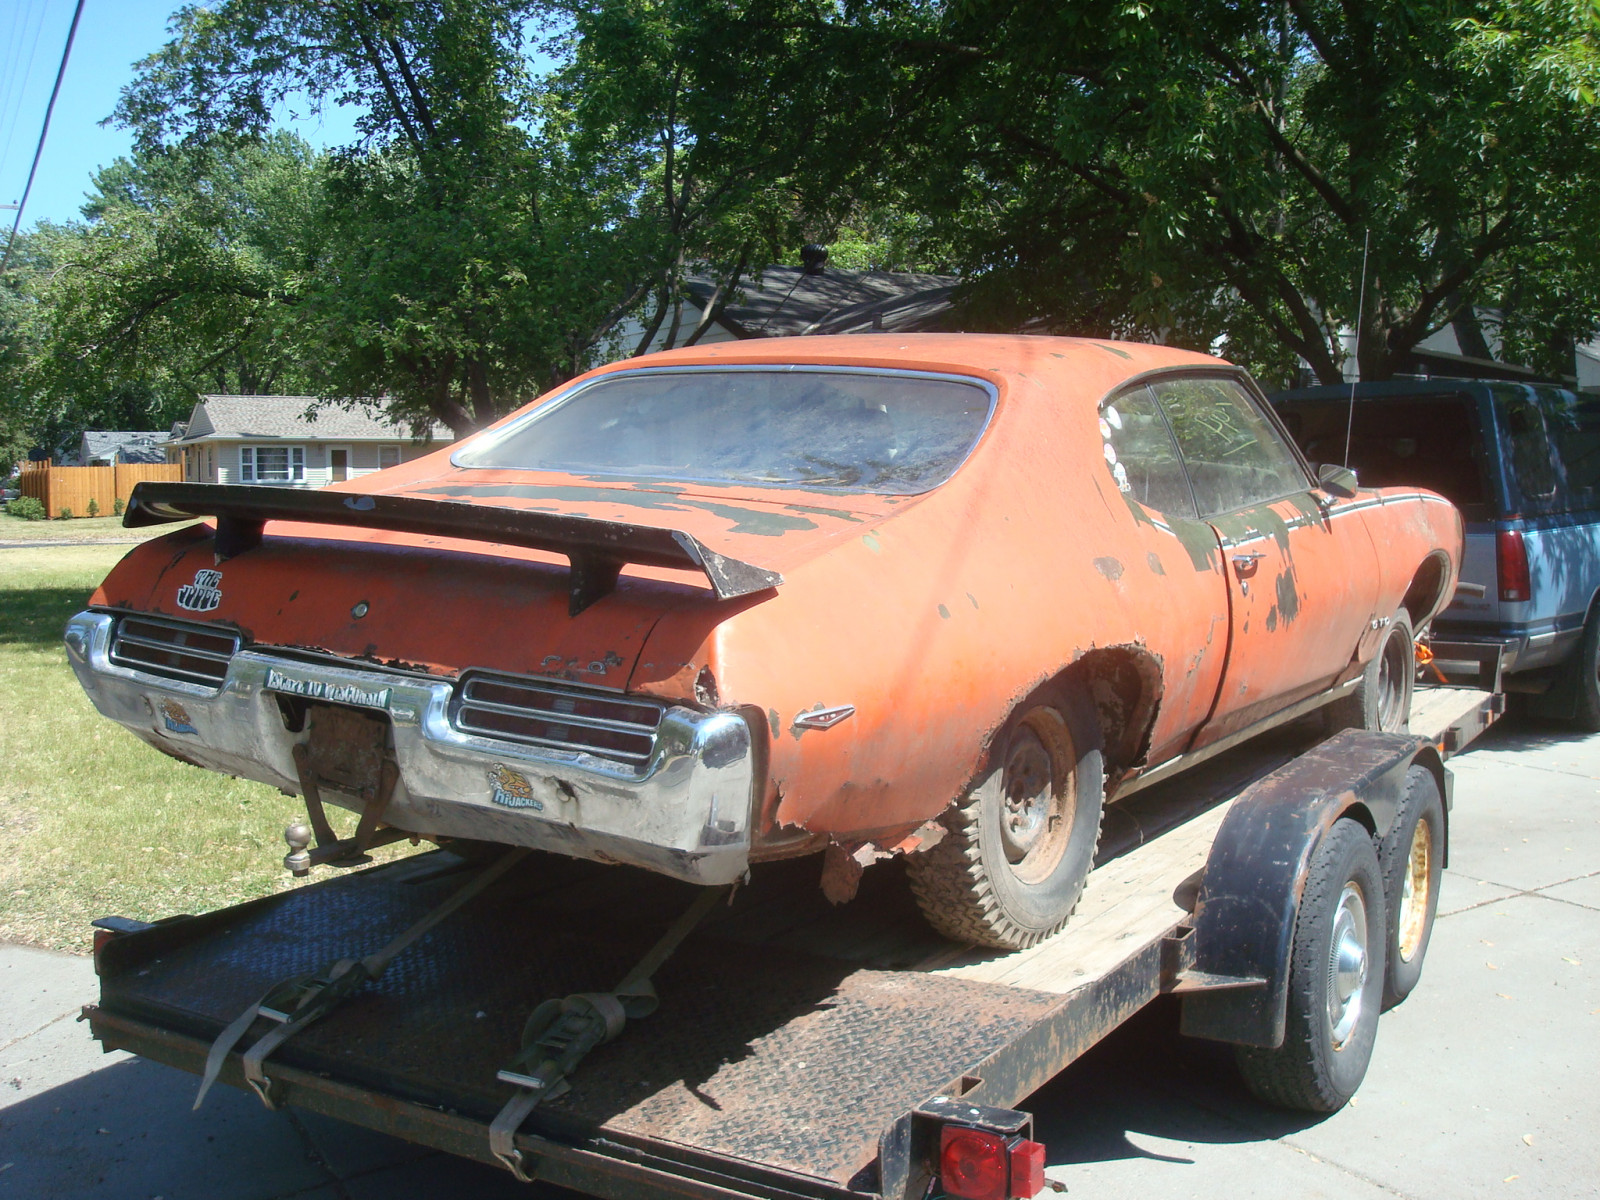 1969 Pontiac GTO RAM AIR IV Coupe Project - Image 3